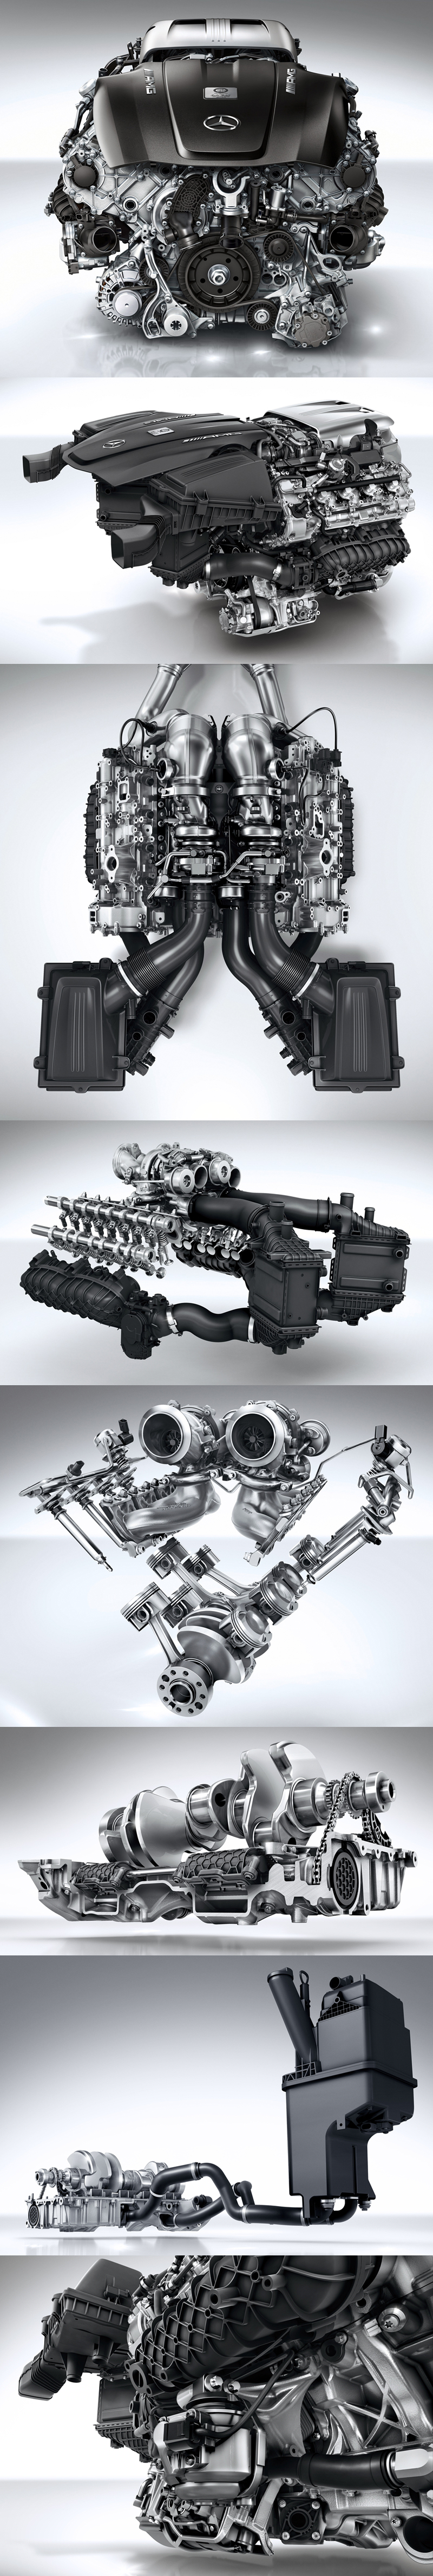 2015_08_Mercedes_Benz_AMG_GT_S_Engine_02